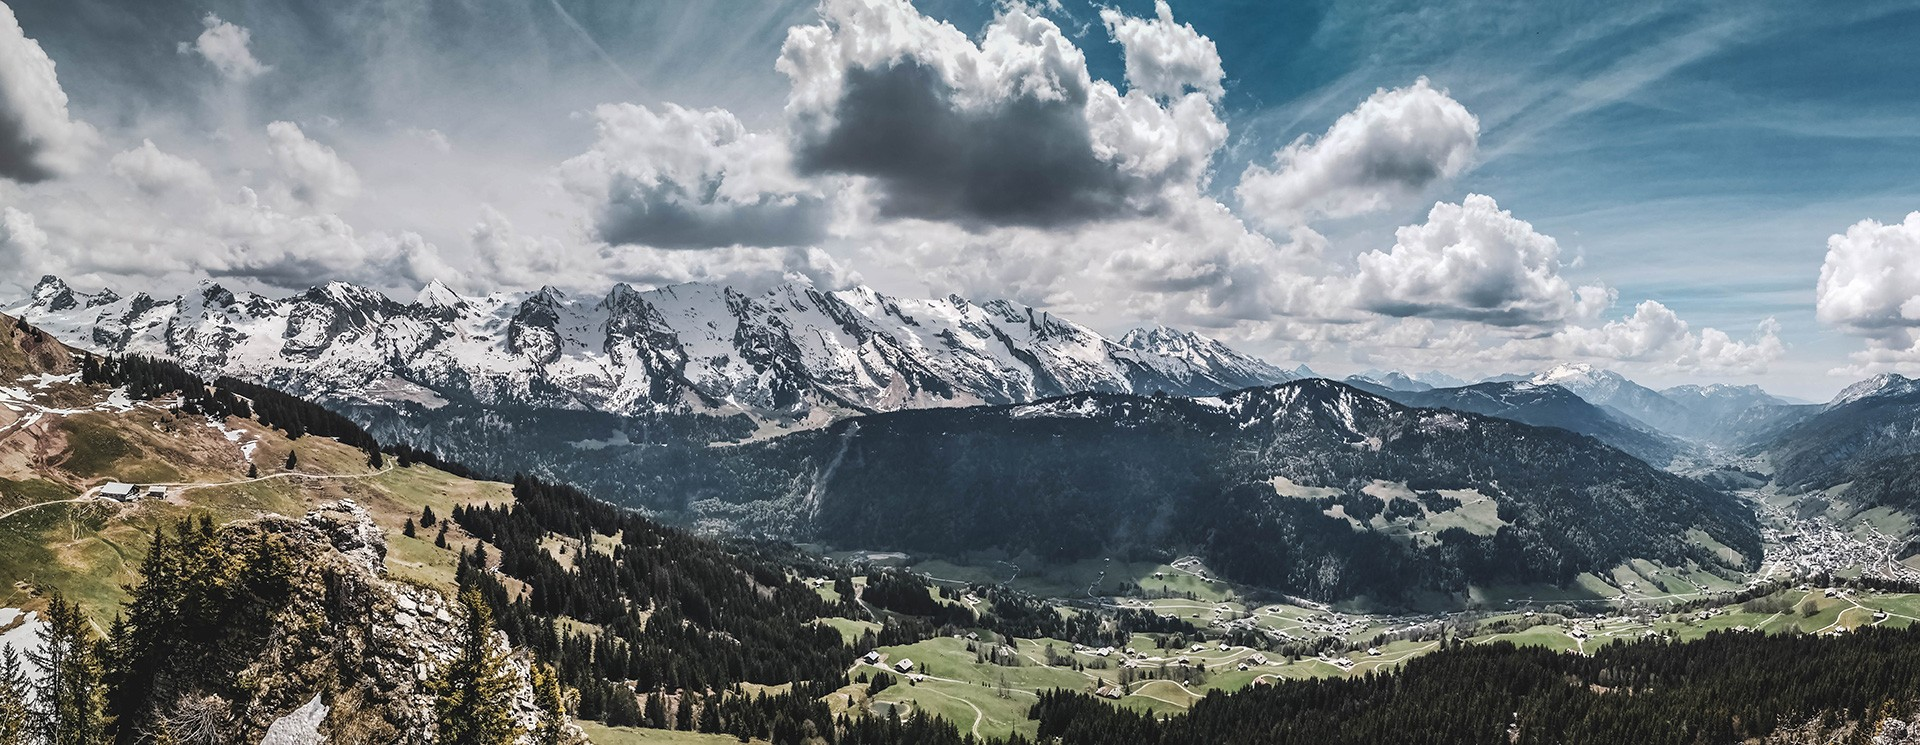 Le Grand-Bornand au printemps